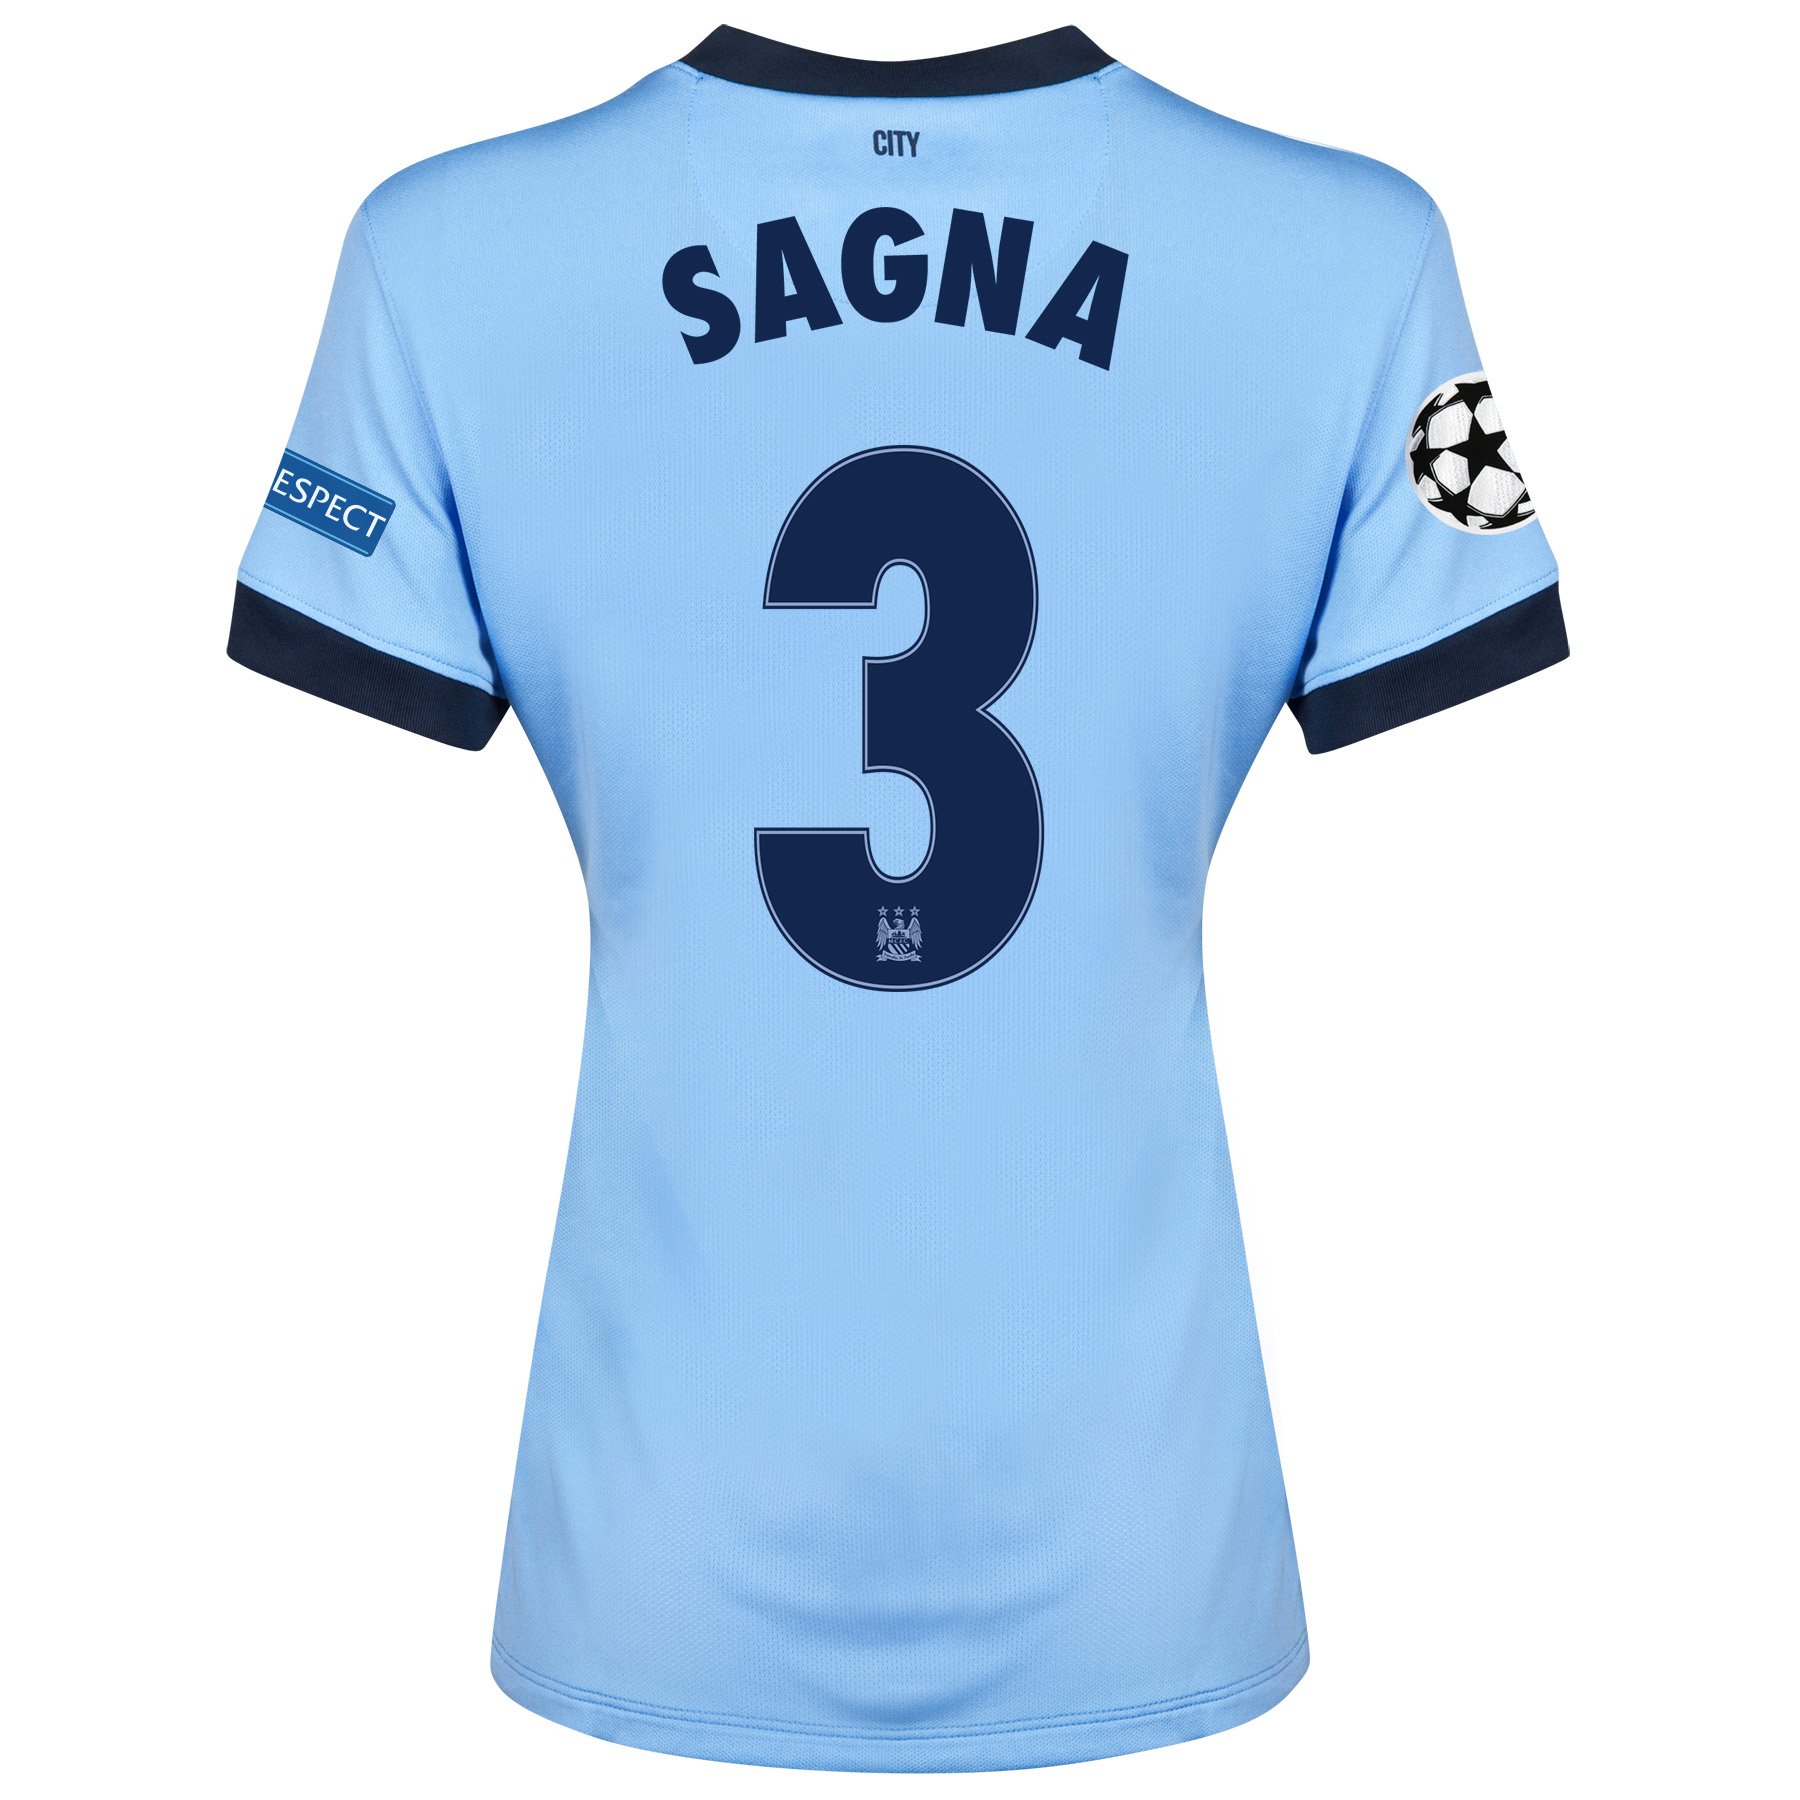 Manchester City UEFA Champions League Home Shirt 2014/15 - Womens Sky Blue with Sagna 3 printing